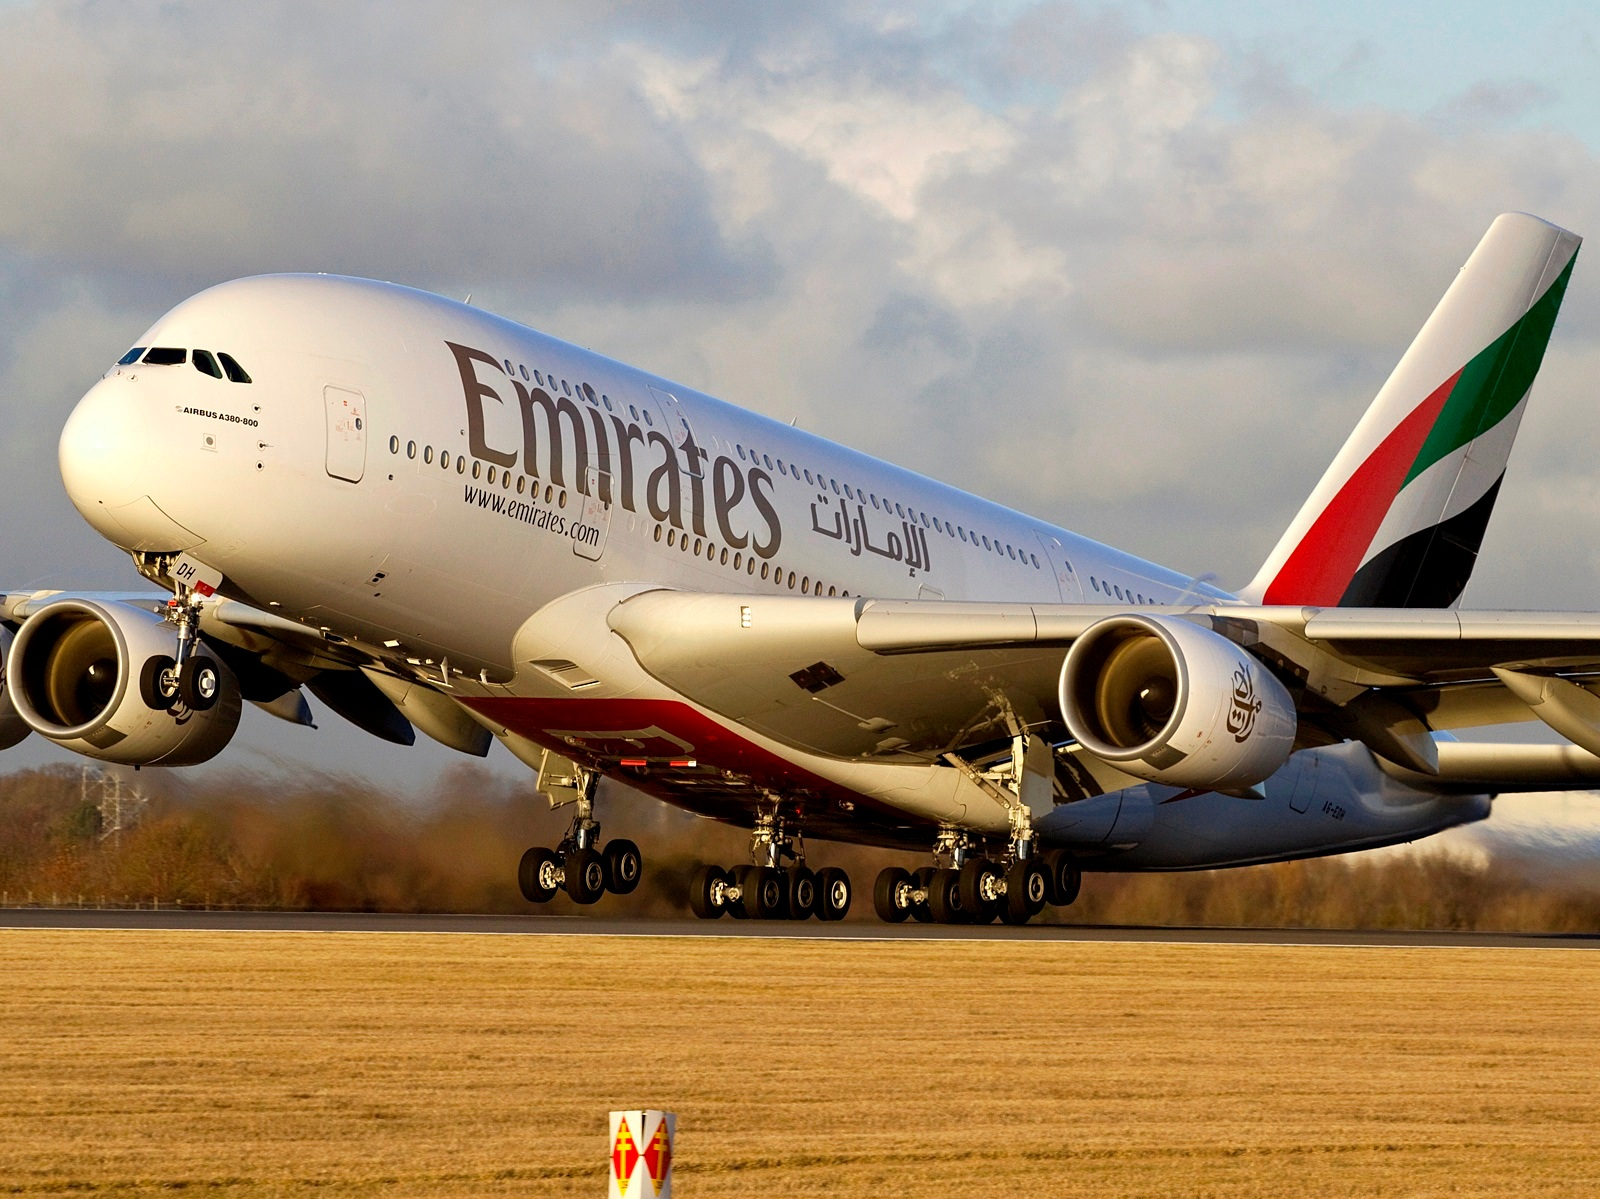 Emirates Airbus A380 800 Sunset Takeoff Aircraft Wallpaper 4021 1600x1199